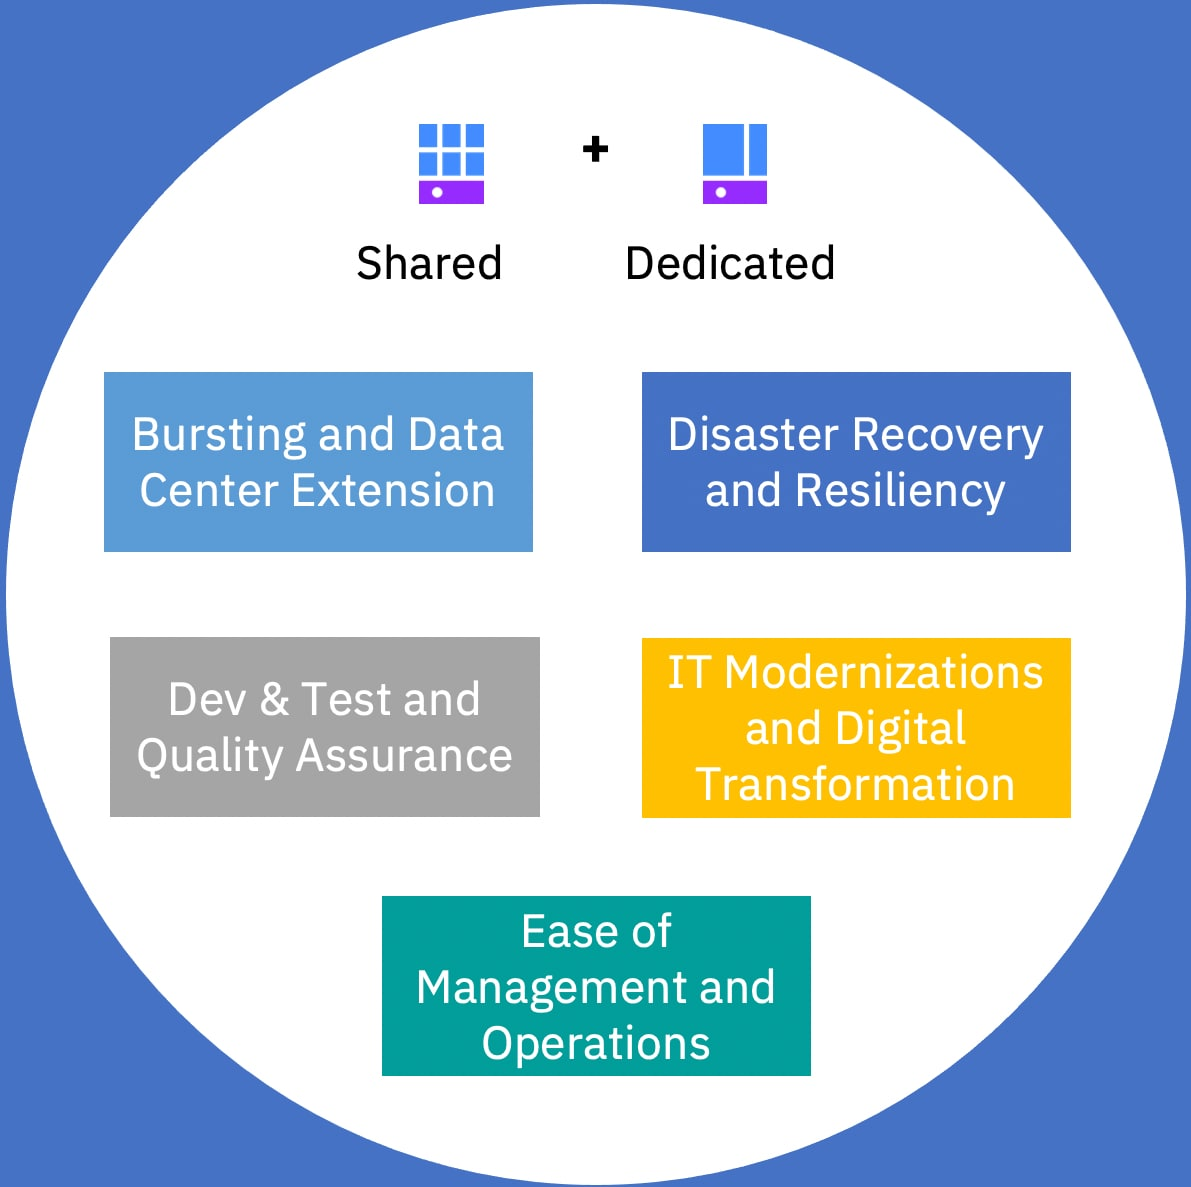 Here are some common use cases where you can leverage the VMware Shared solution to provide environment and cost optimization: